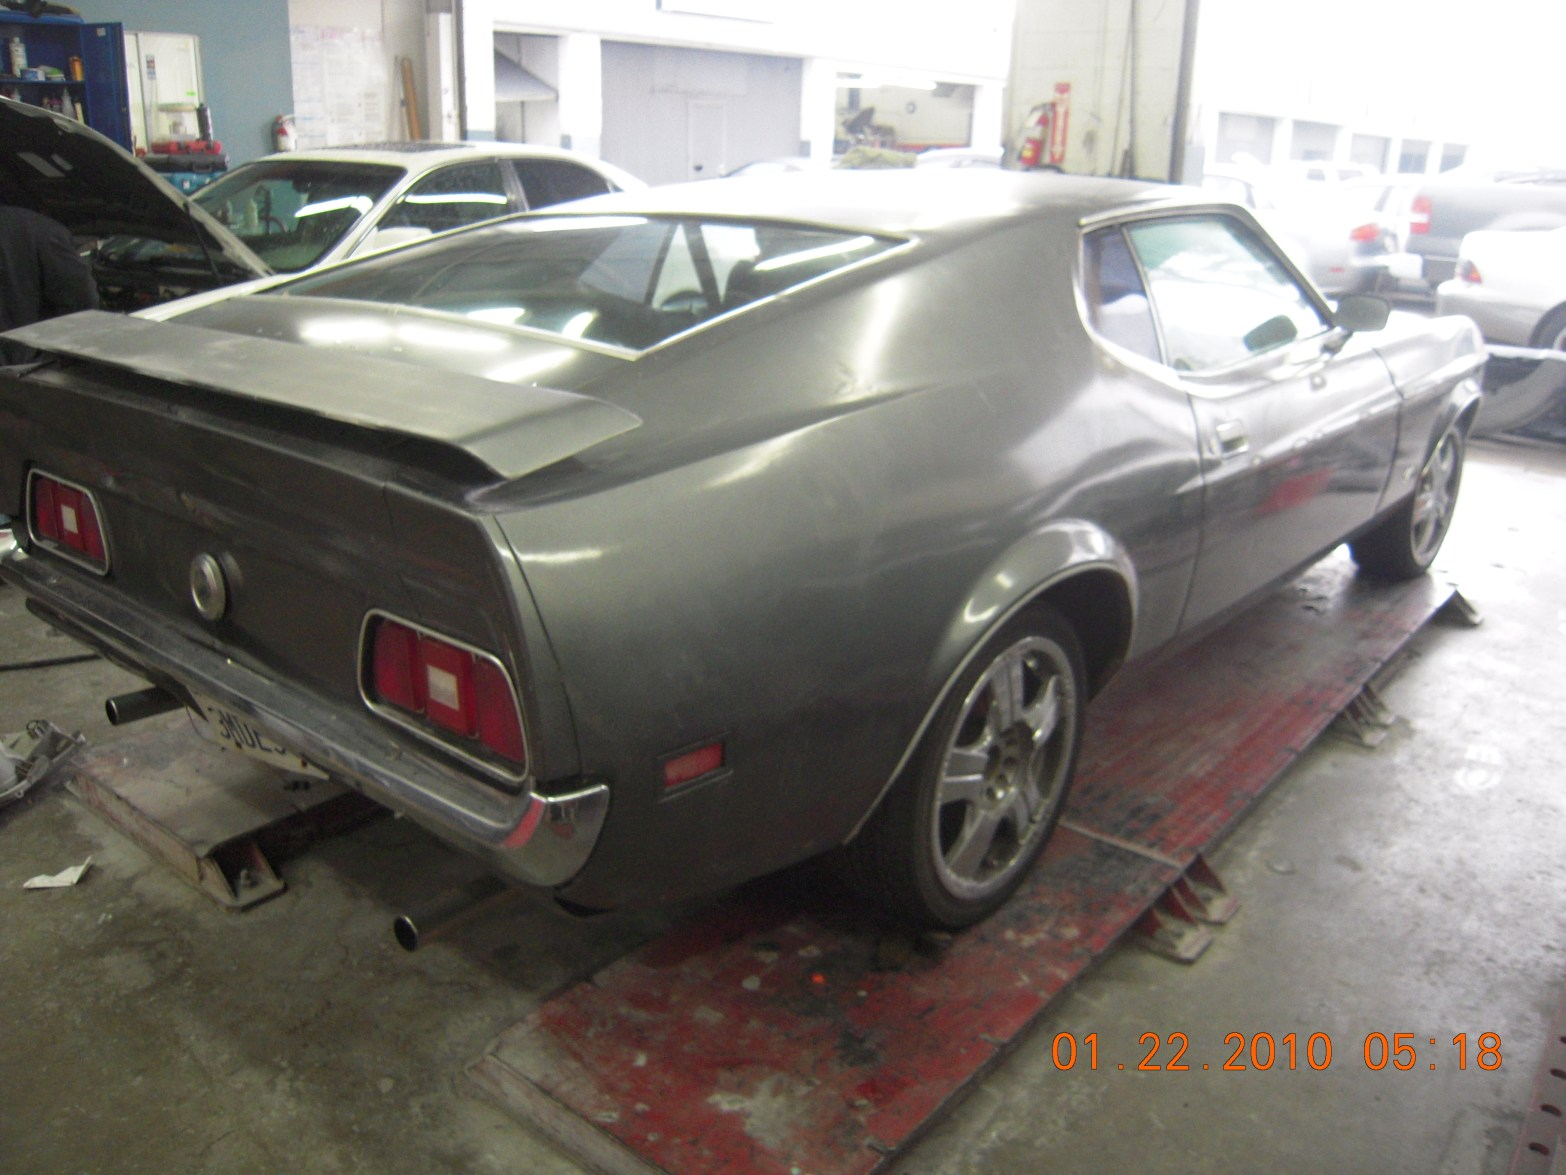 west-coast-body-and-paint-1971-mustang-mach-1-gray-4